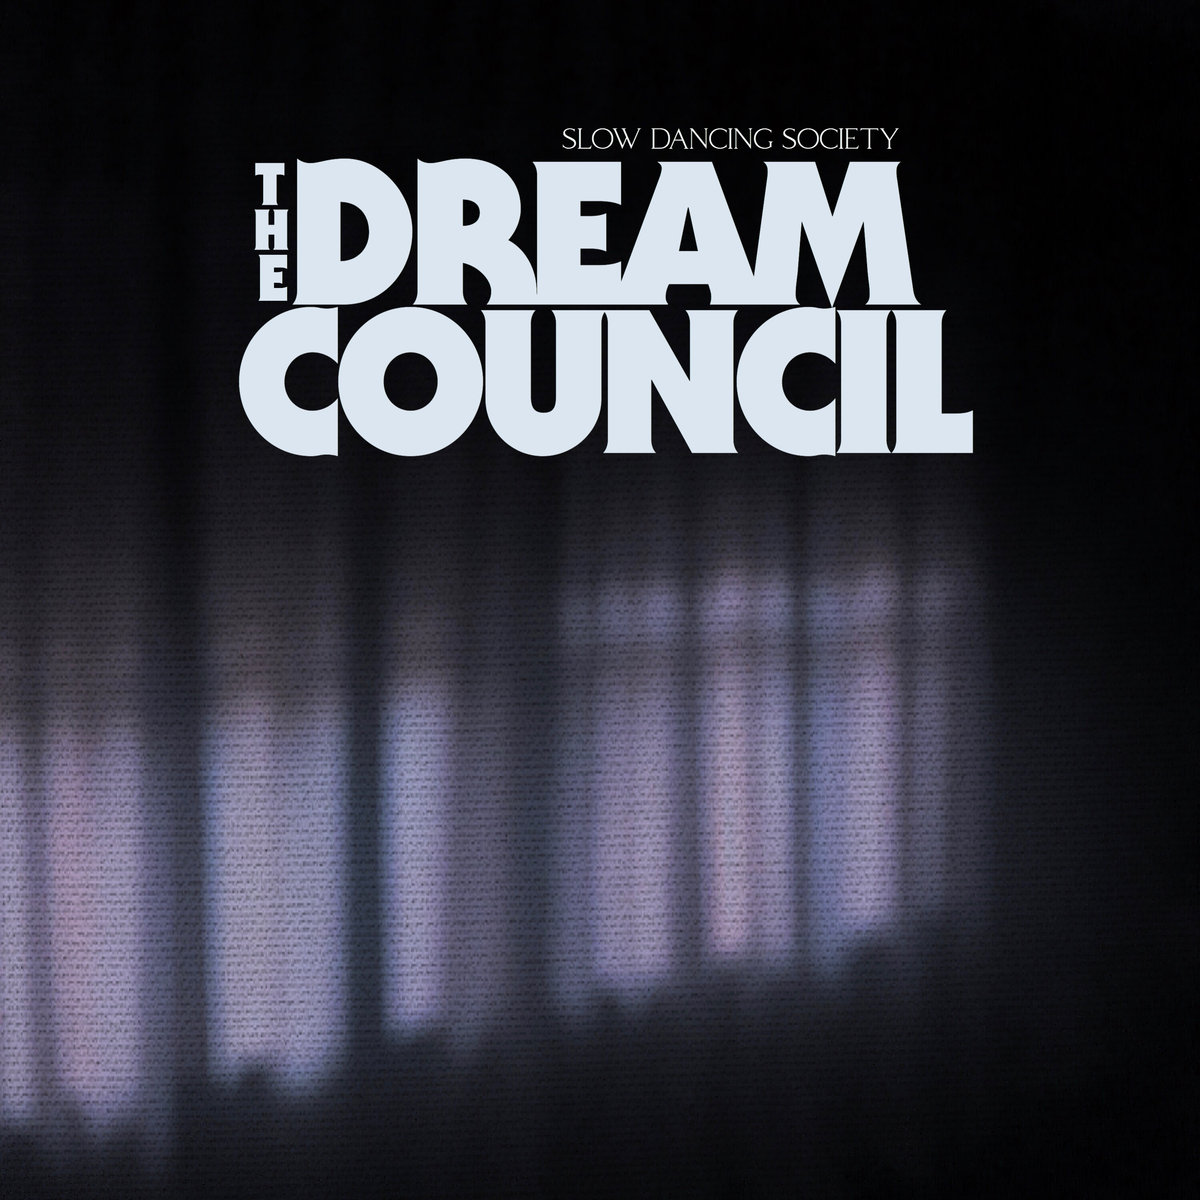 Slow Dancing Society - The Dream Council